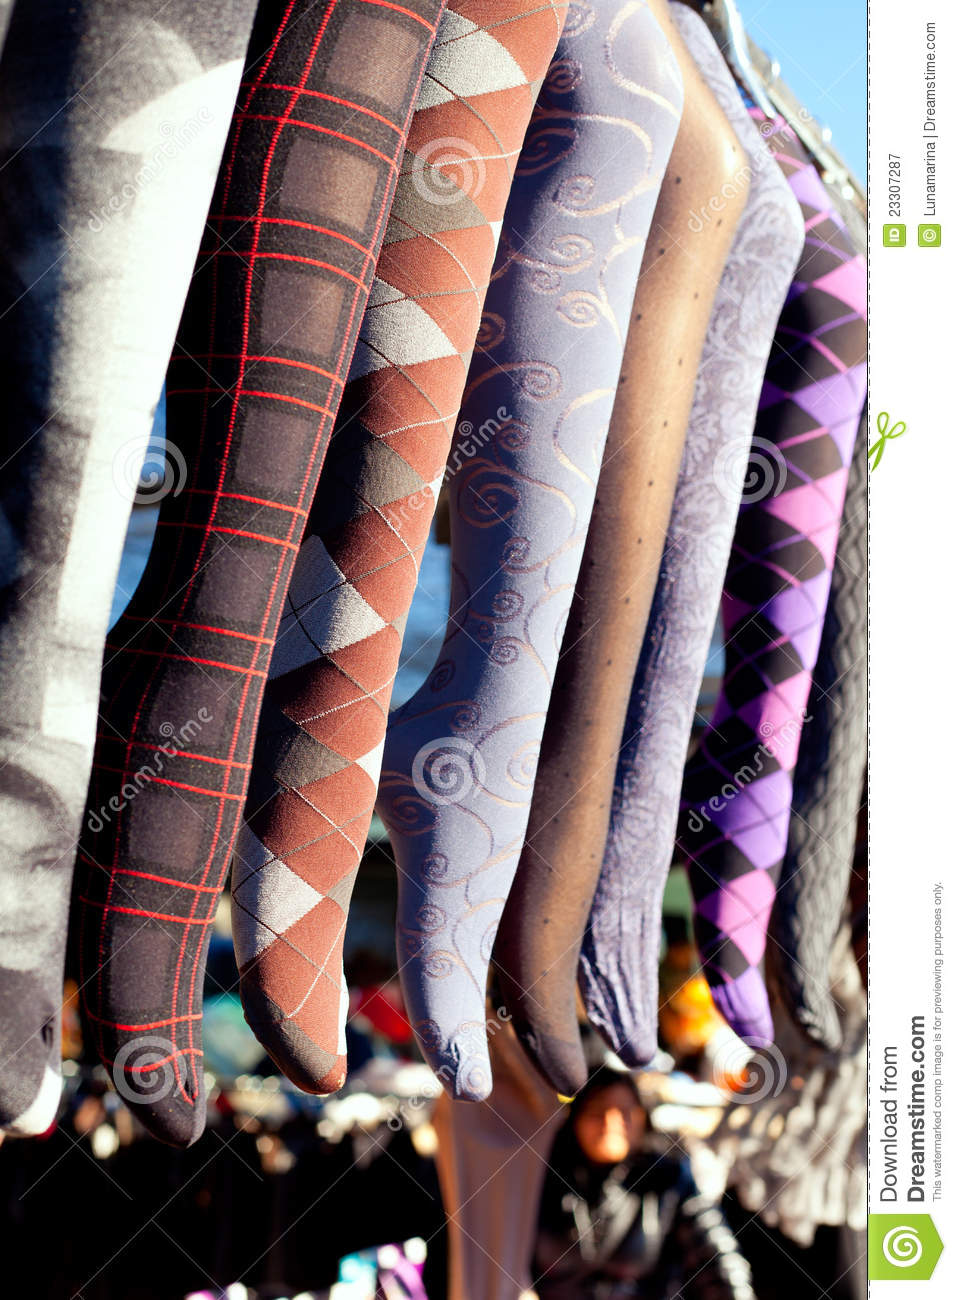 colorful tights in a row hanging in market royalty free stock photography image 23307287. Black Bedroom Furniture Sets. Home Design Ideas